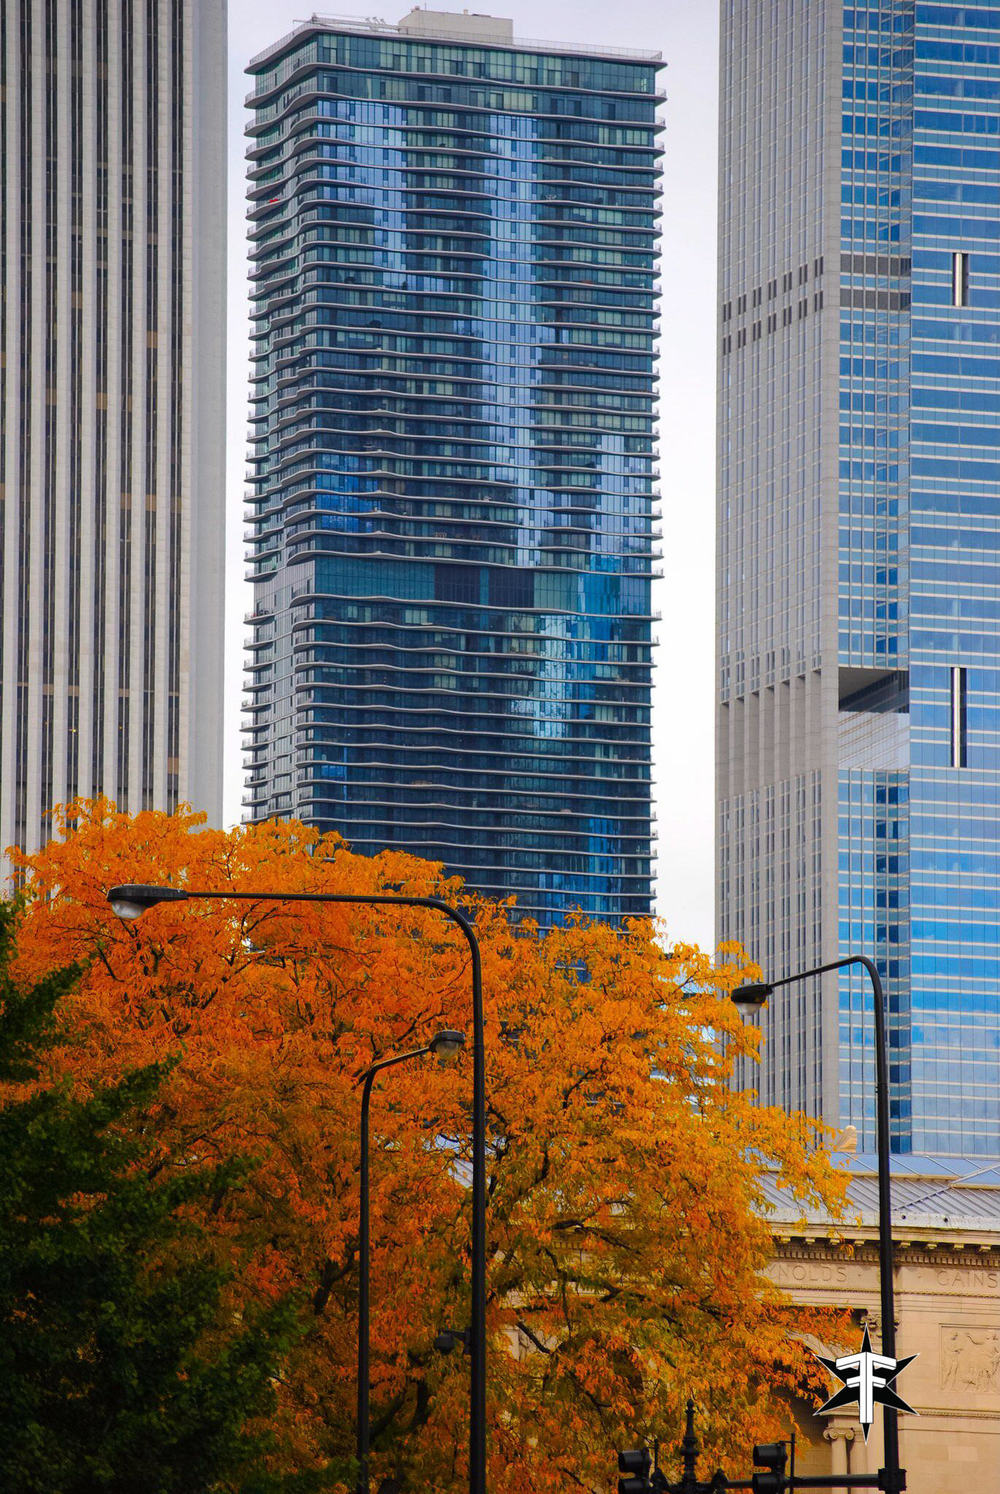 chicago architecture eric formato photography design arquitectura architettura buildings skyscraper skyscrapers-81.jpg